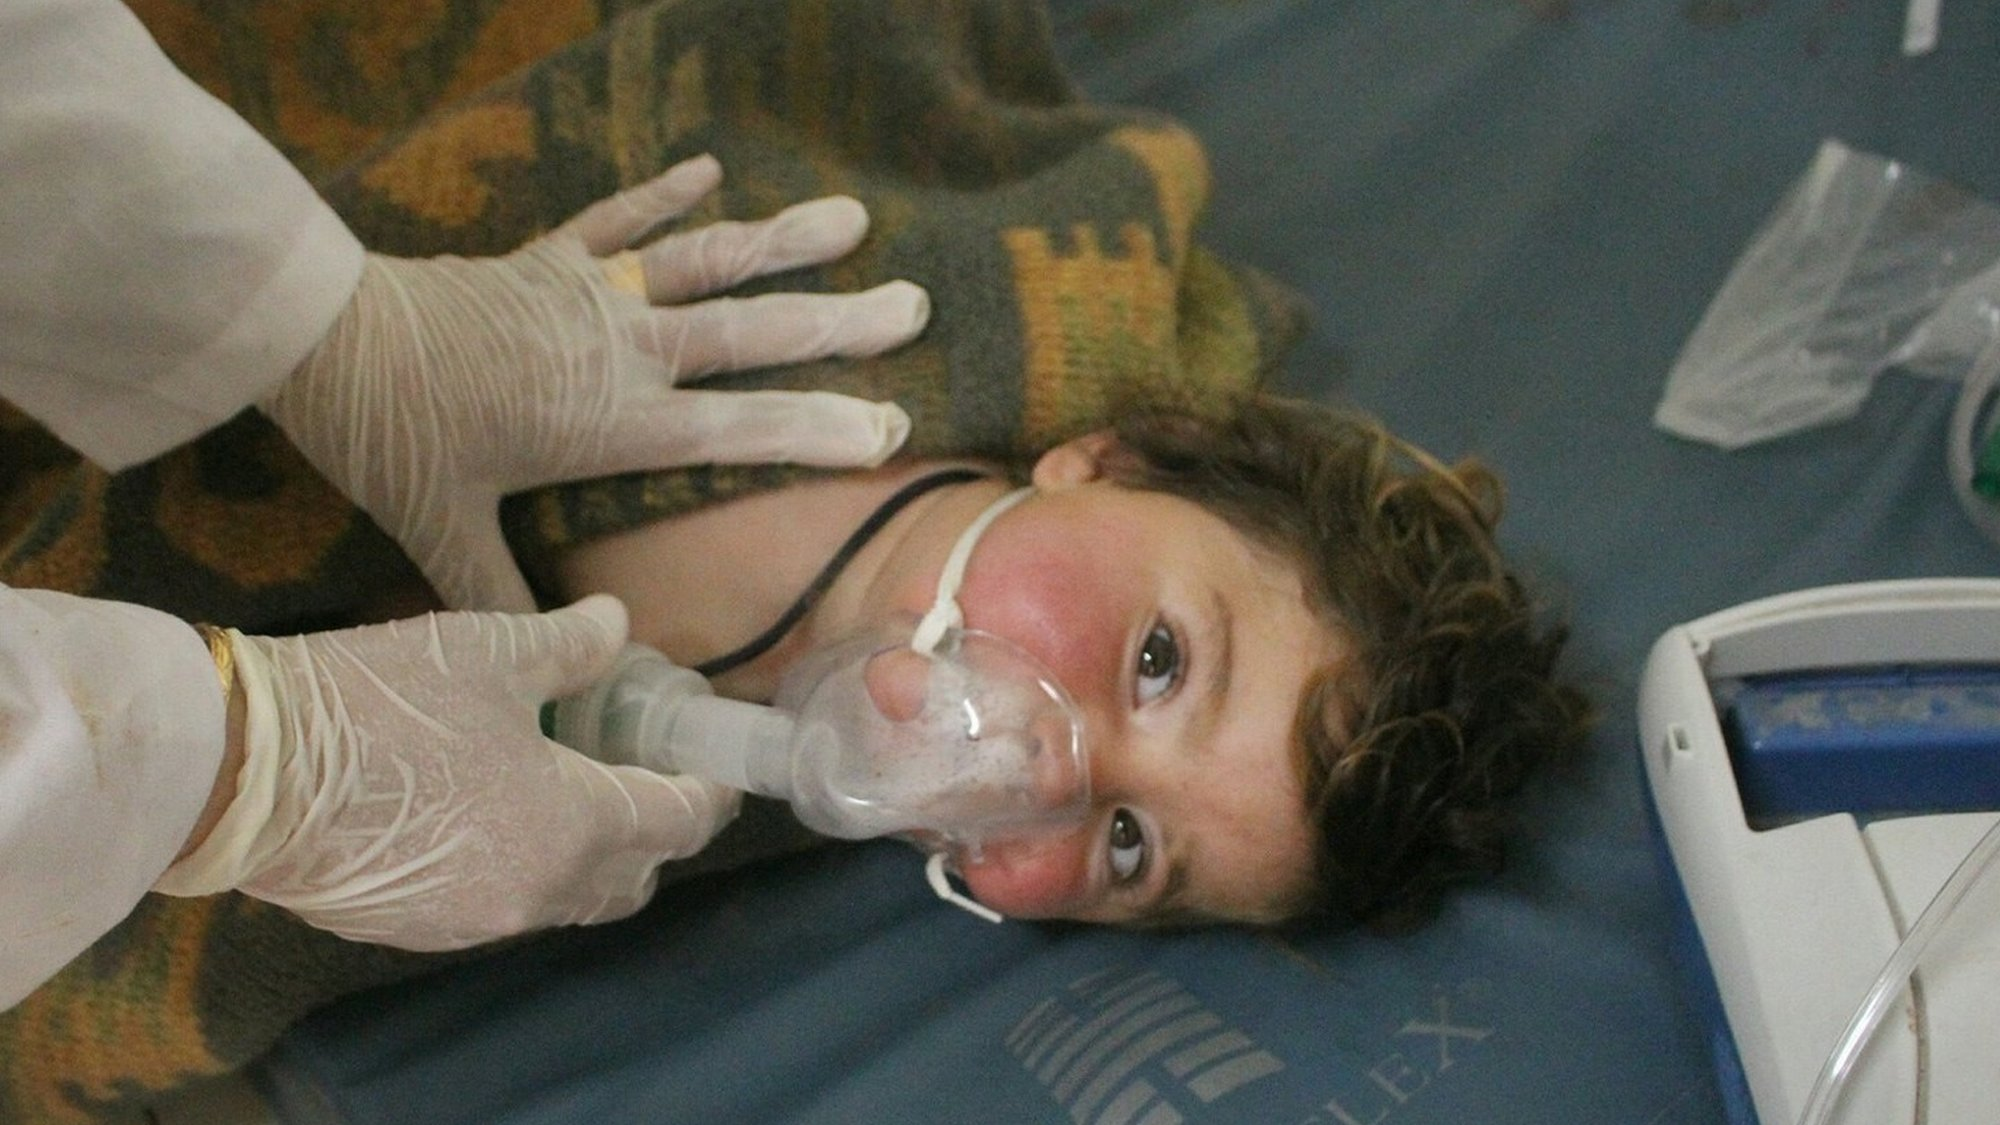 Syrian government made Sarin used in Khan Sheikhoun, France says